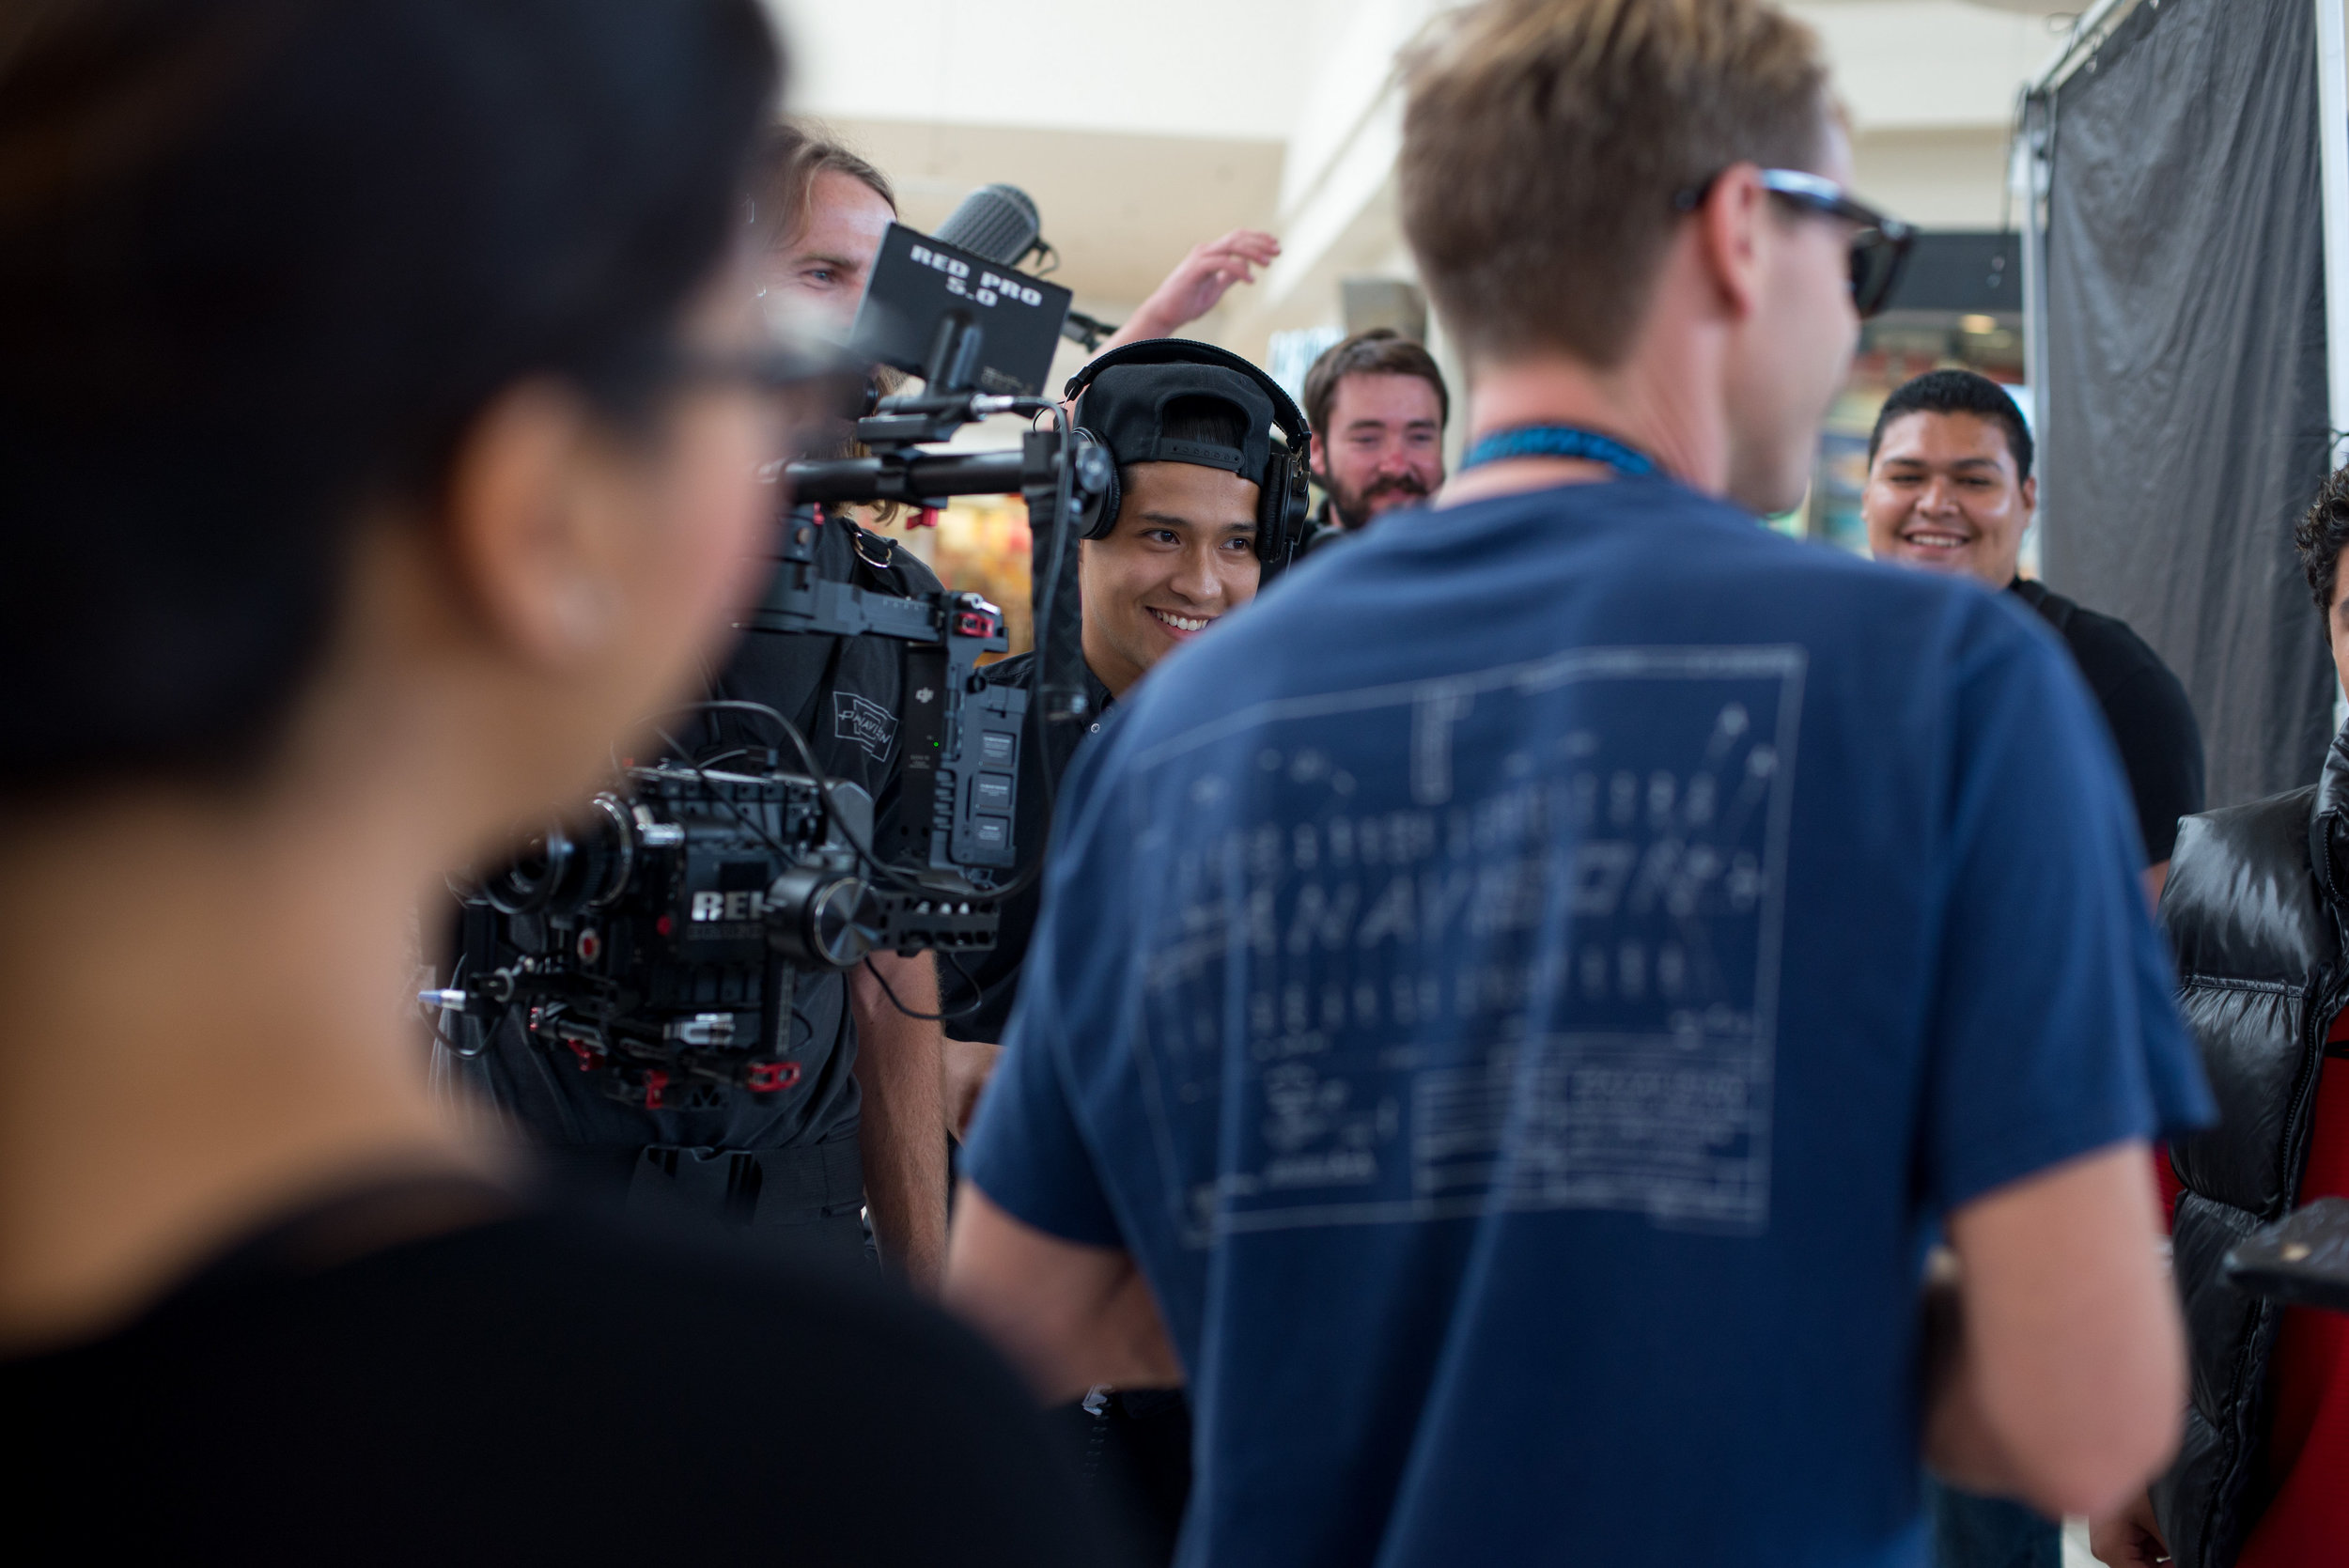 The crew couldn't help but smile and blush during the scene.